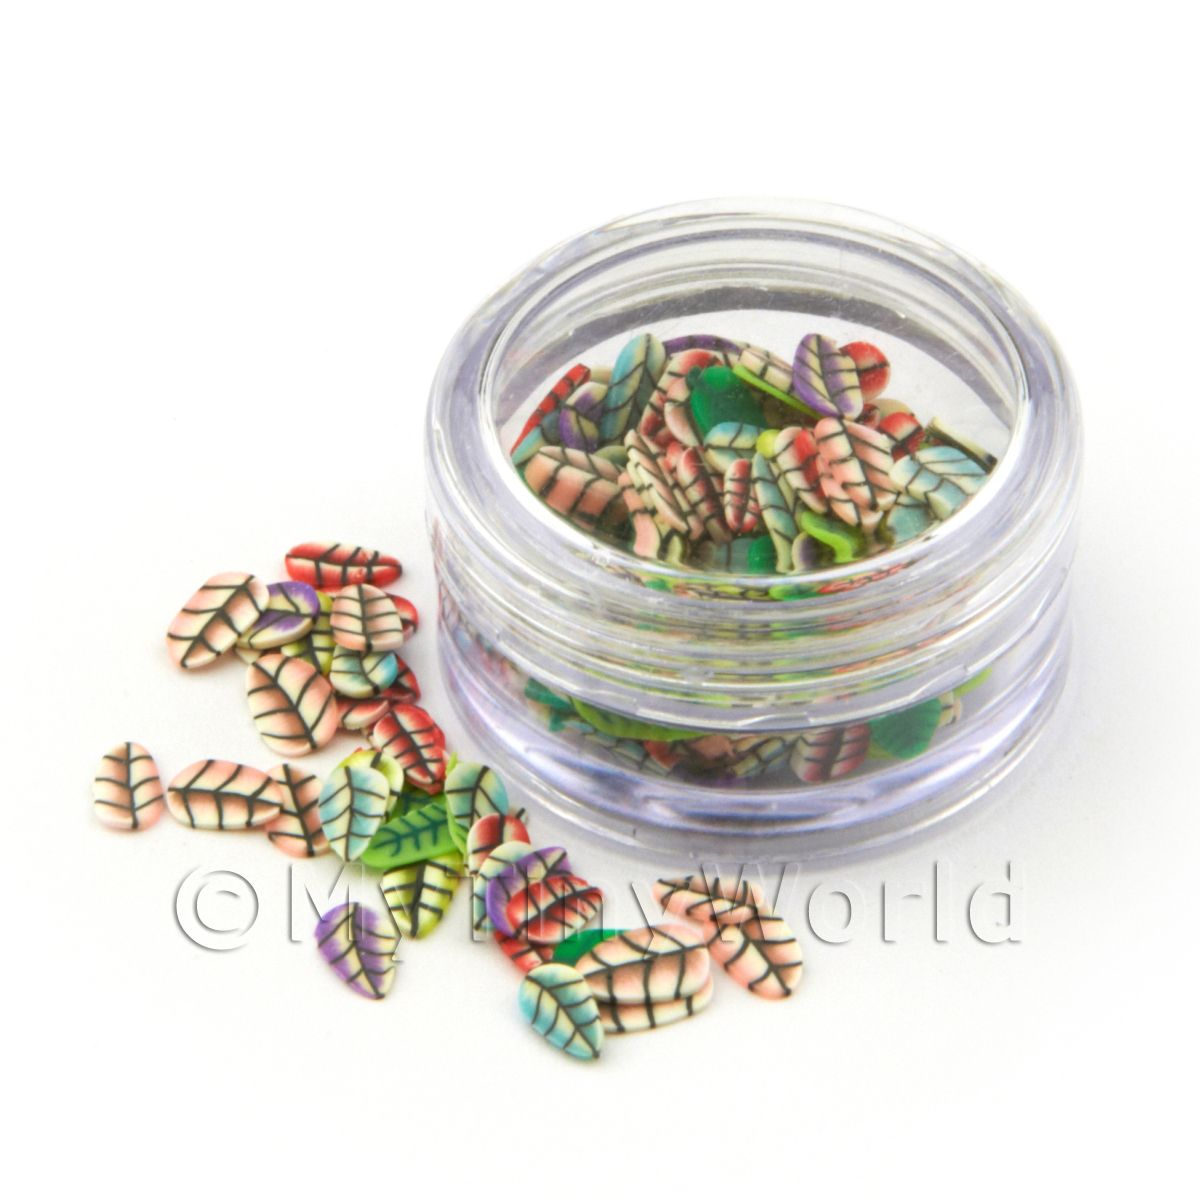 Leaf Themed Nail Art Pot Containing 120 Mixed Slices